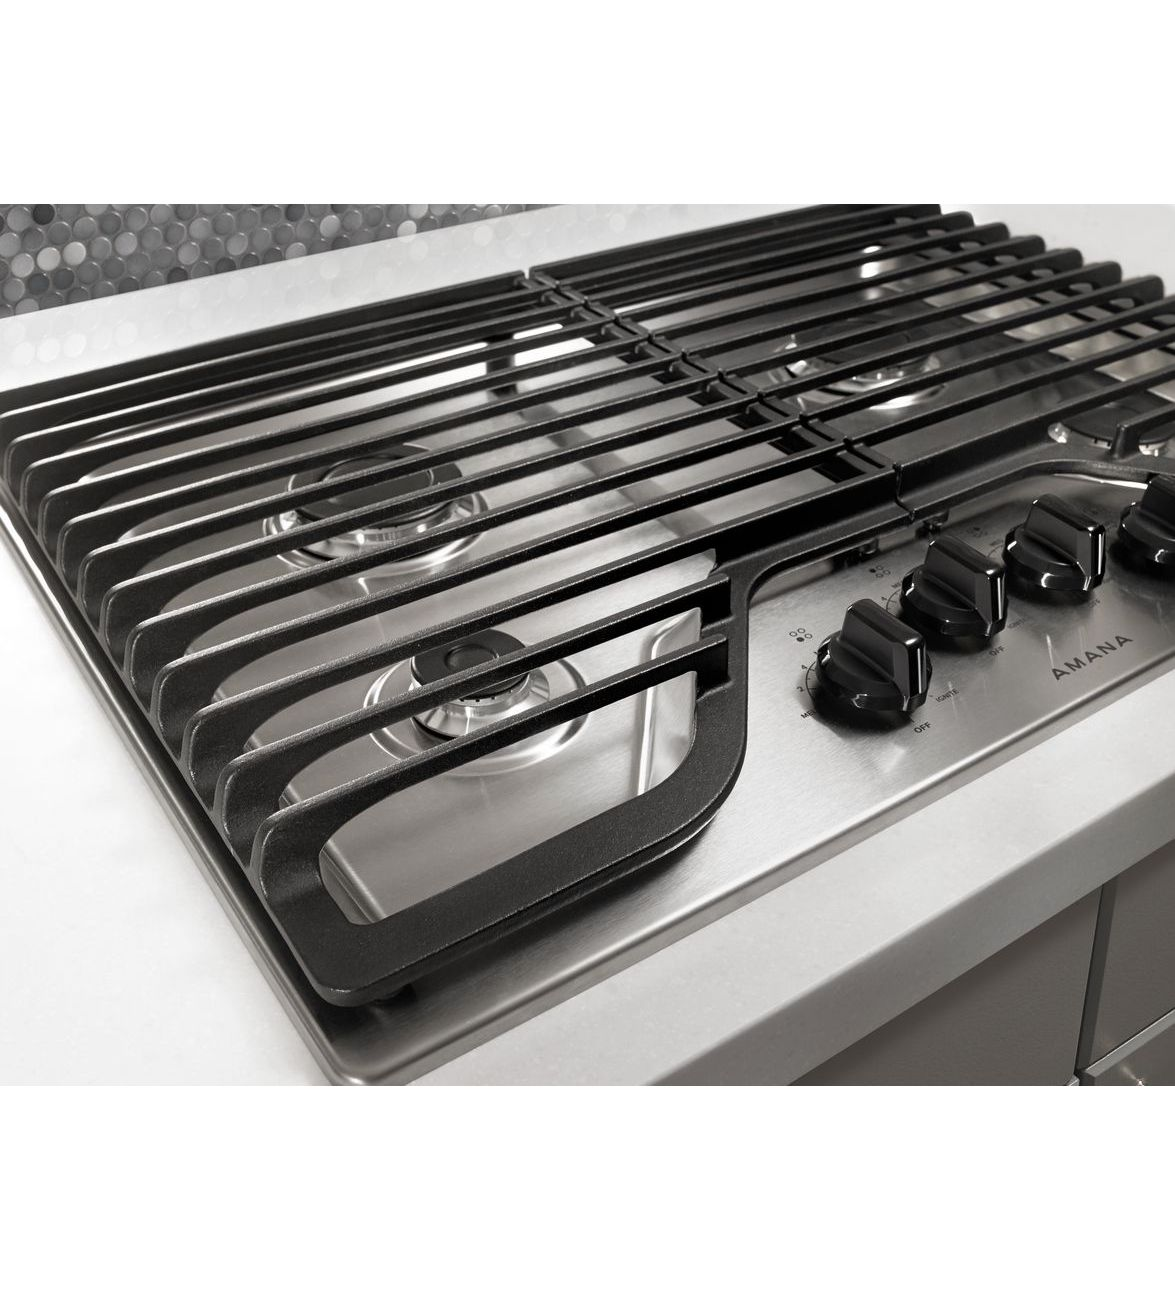 agc6540kfw 30 inch gas cooktop with 4 burners. Black Bedroom Furniture Sets. Home Design Ideas